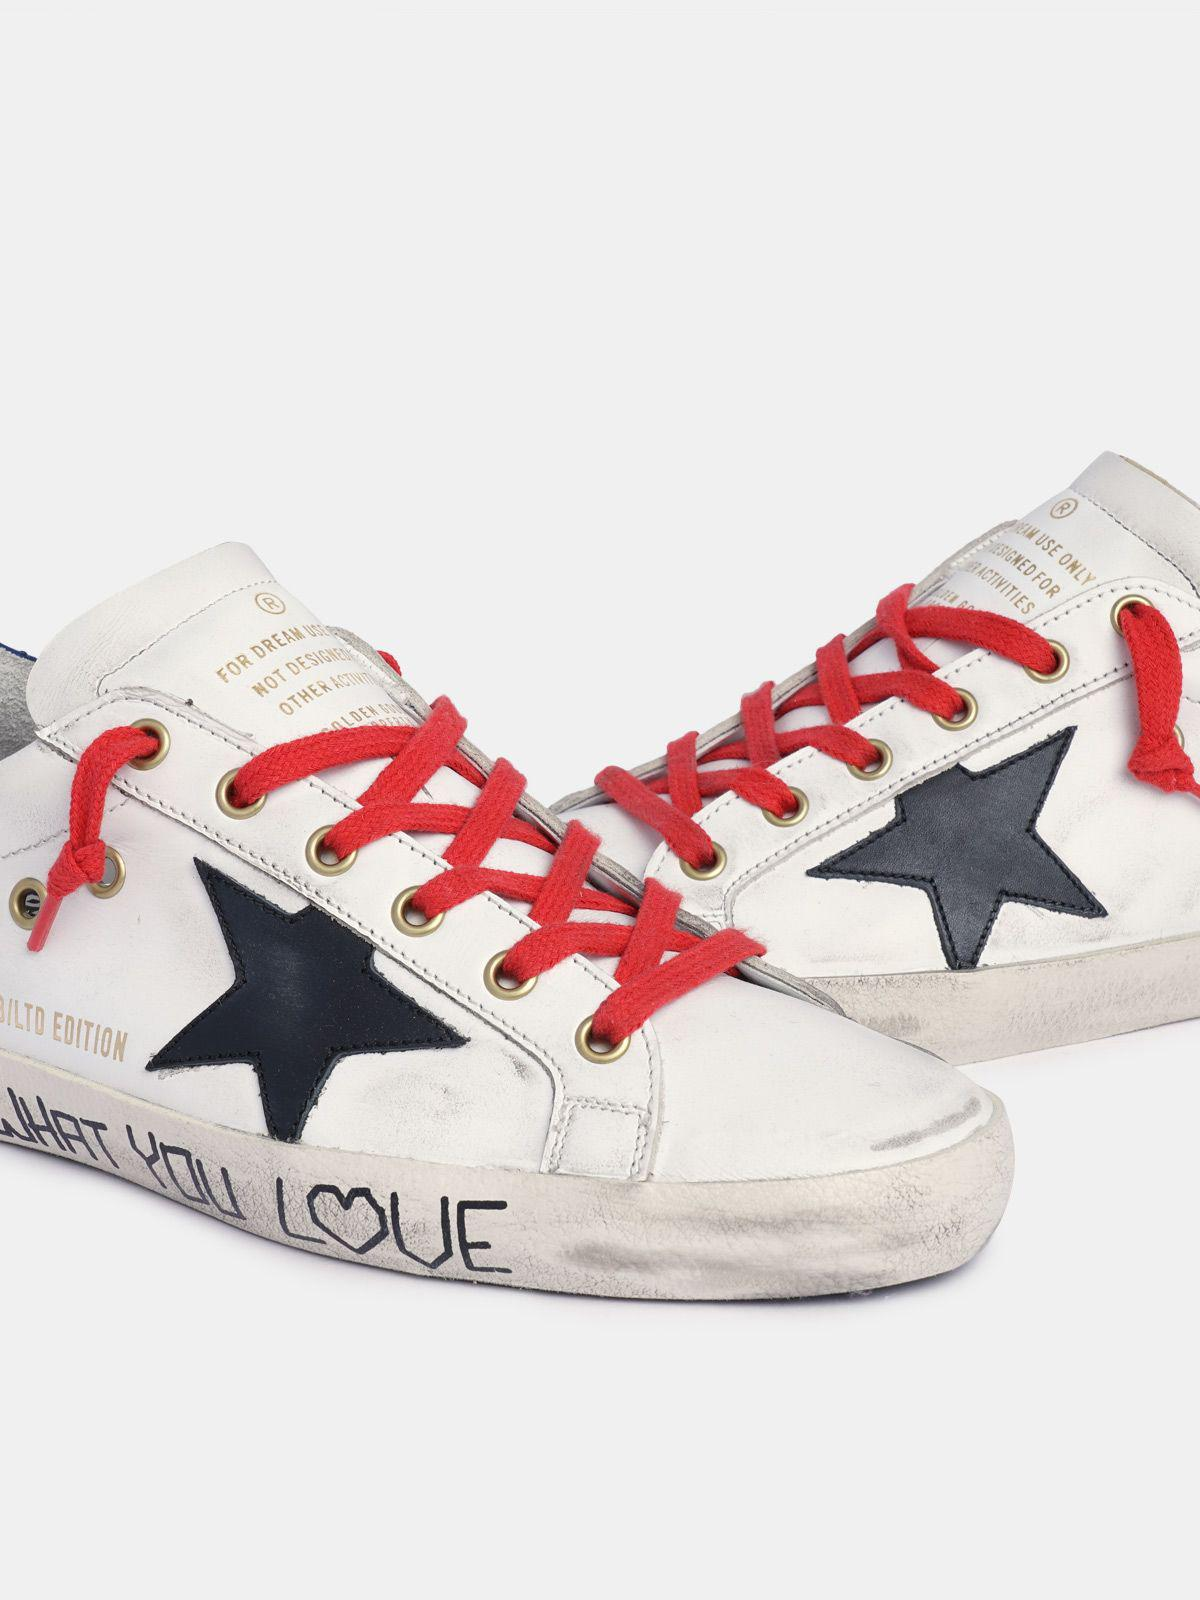 Super-Star sneakers in white leather with black star and blue heel tab 3